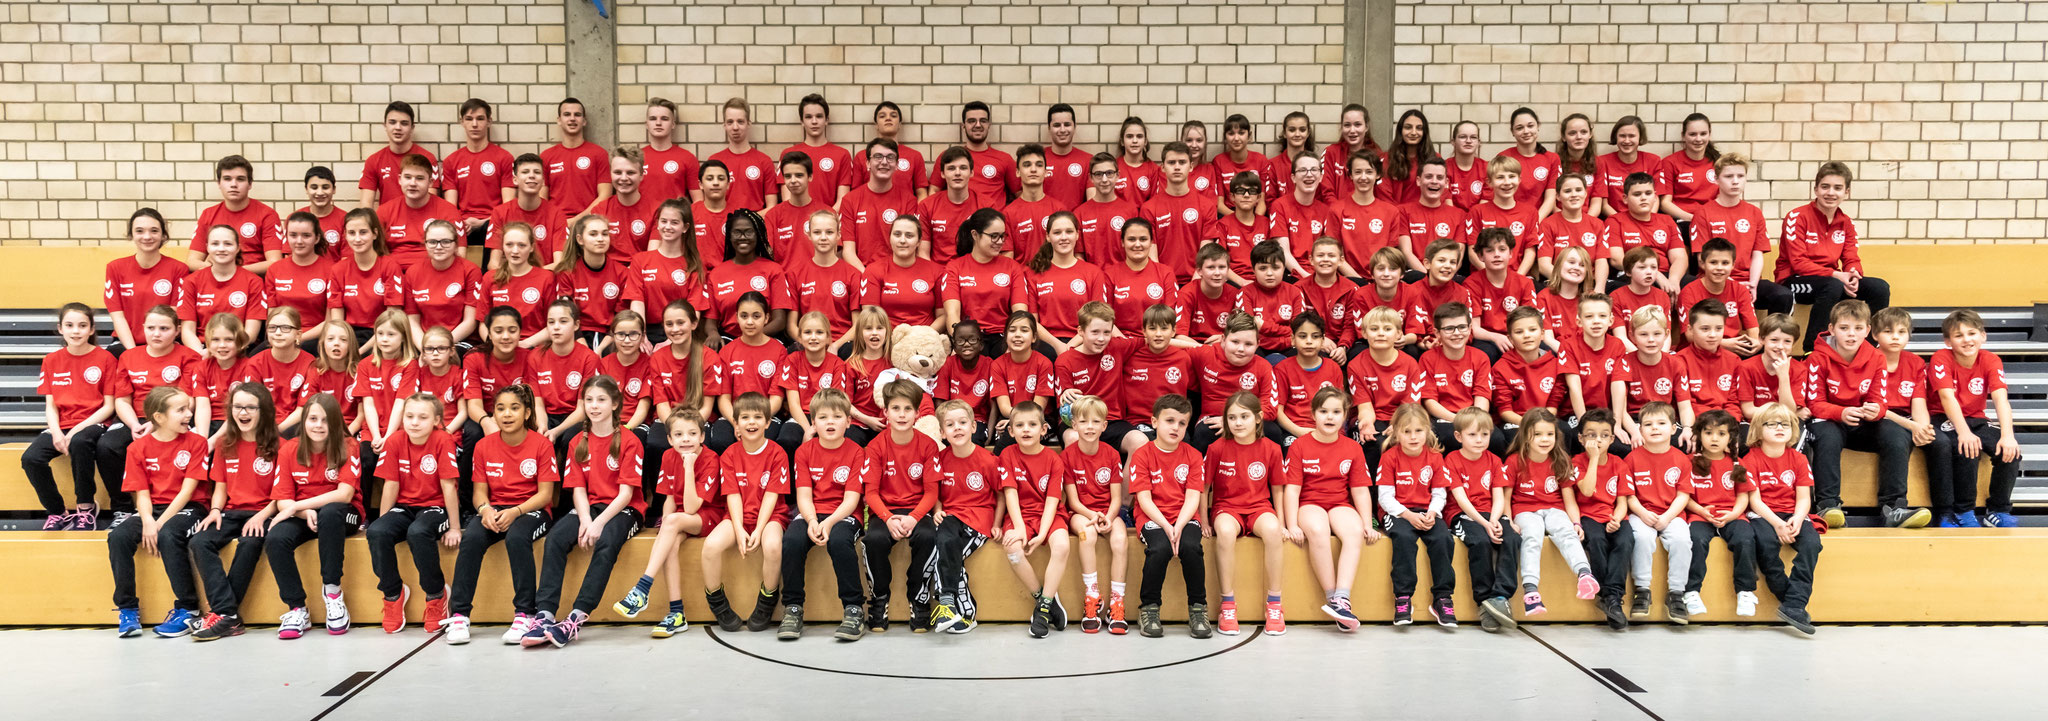 Unsere Jugend 2018/19